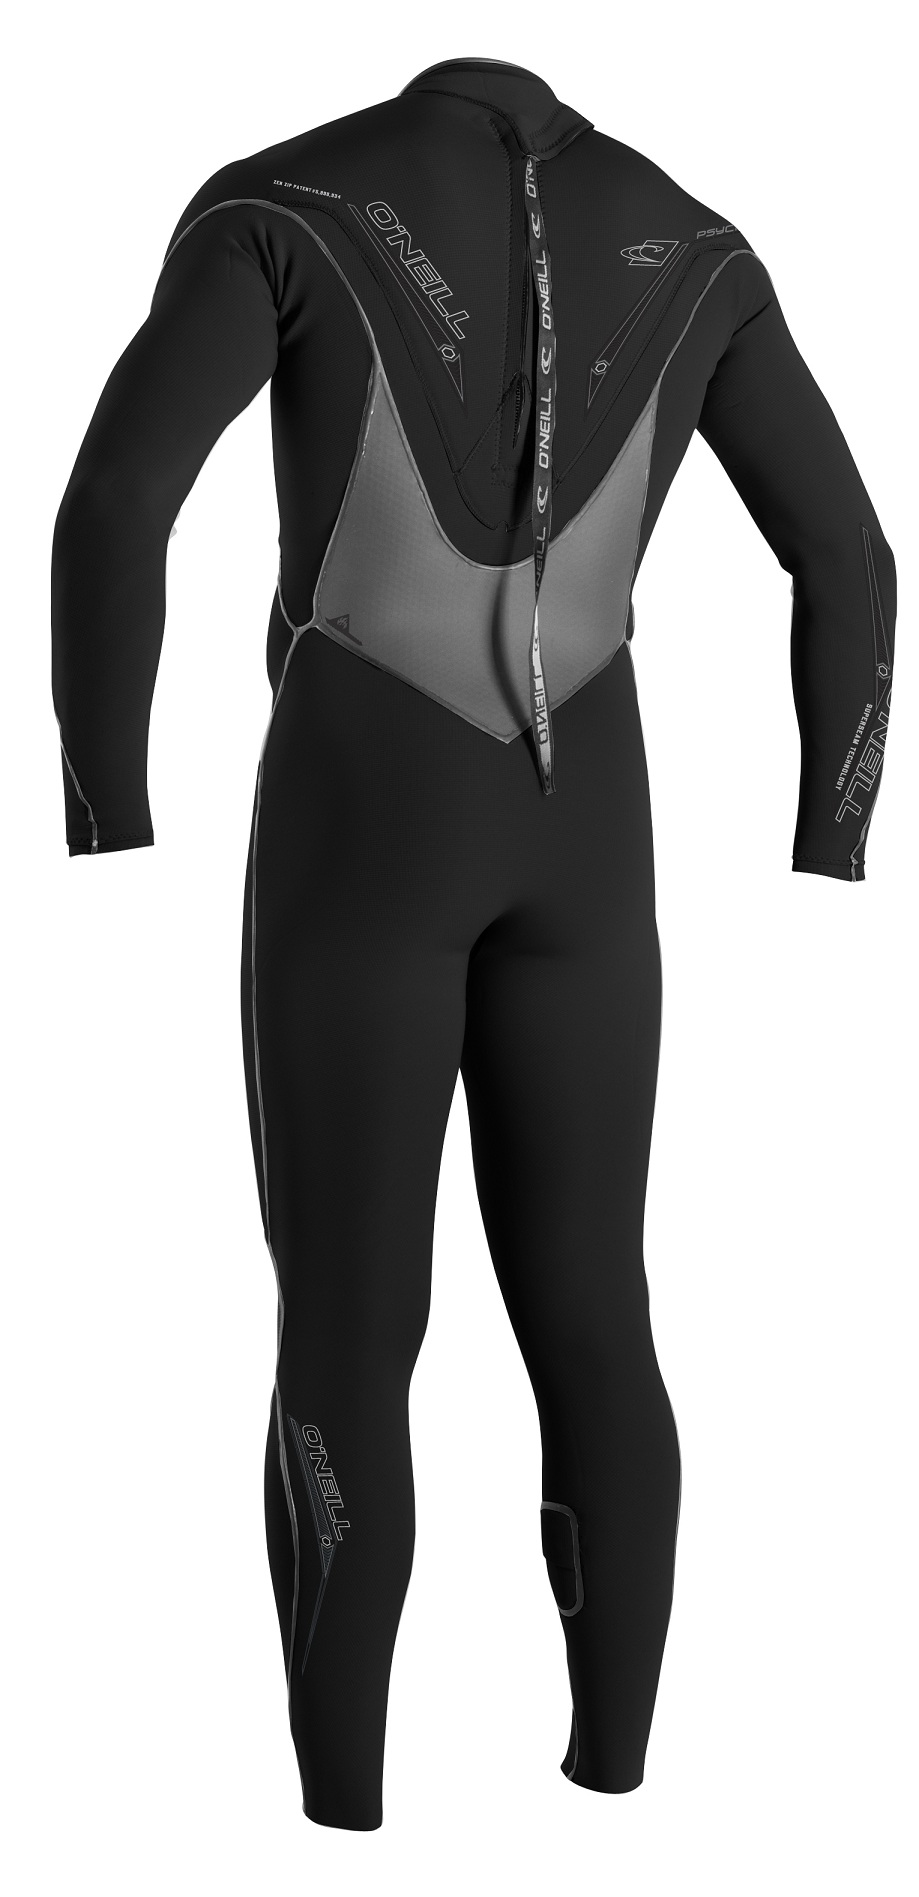 O'Neill PSYCHO 3 III ZEN Zip 3/2mm SSW Men's Wetsuit - NEW! - 4037-J94